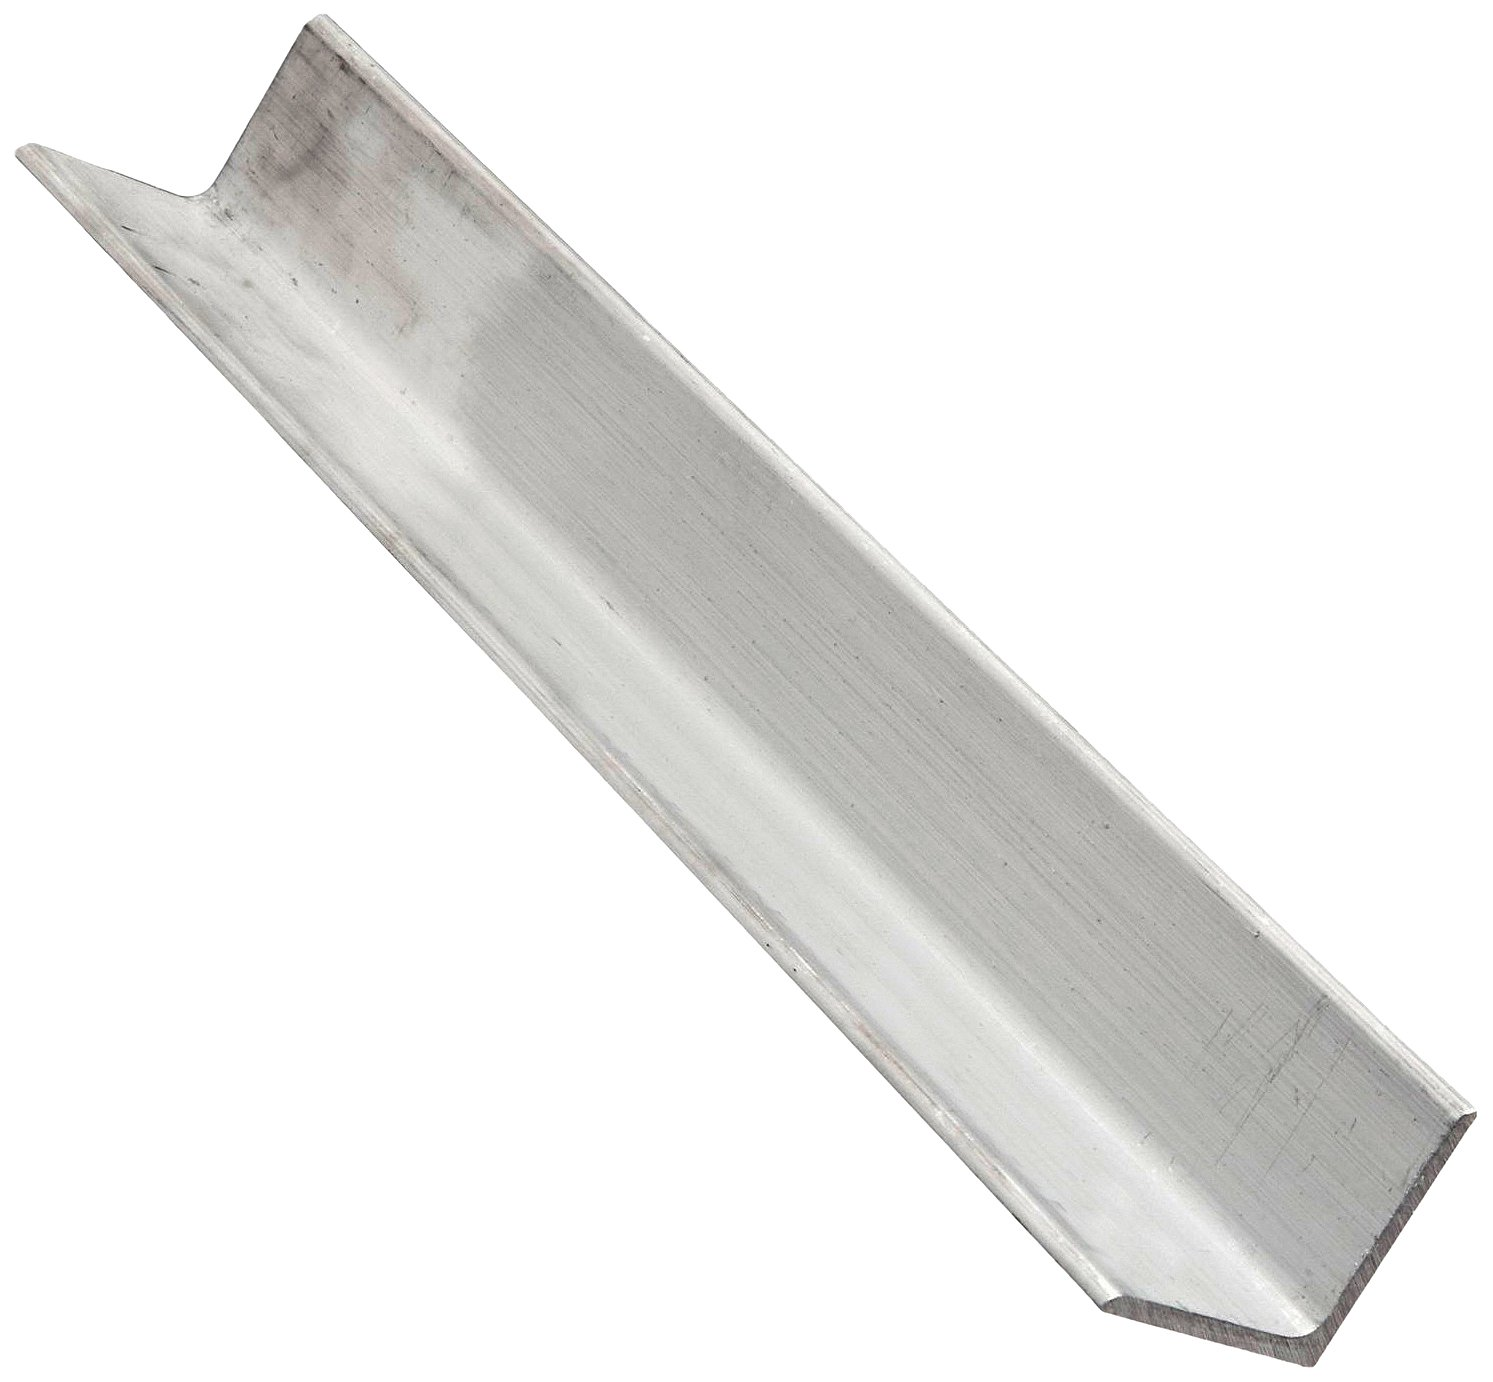 "6061 Aluminum Angle, Unpolished (Mill) Finish, Extruded, T6 Temper, Equal Leg Length, Rounded Corners, 1-1/2"" Leg Lengths, 1/8"" Wall Thickness, 24"" Length"